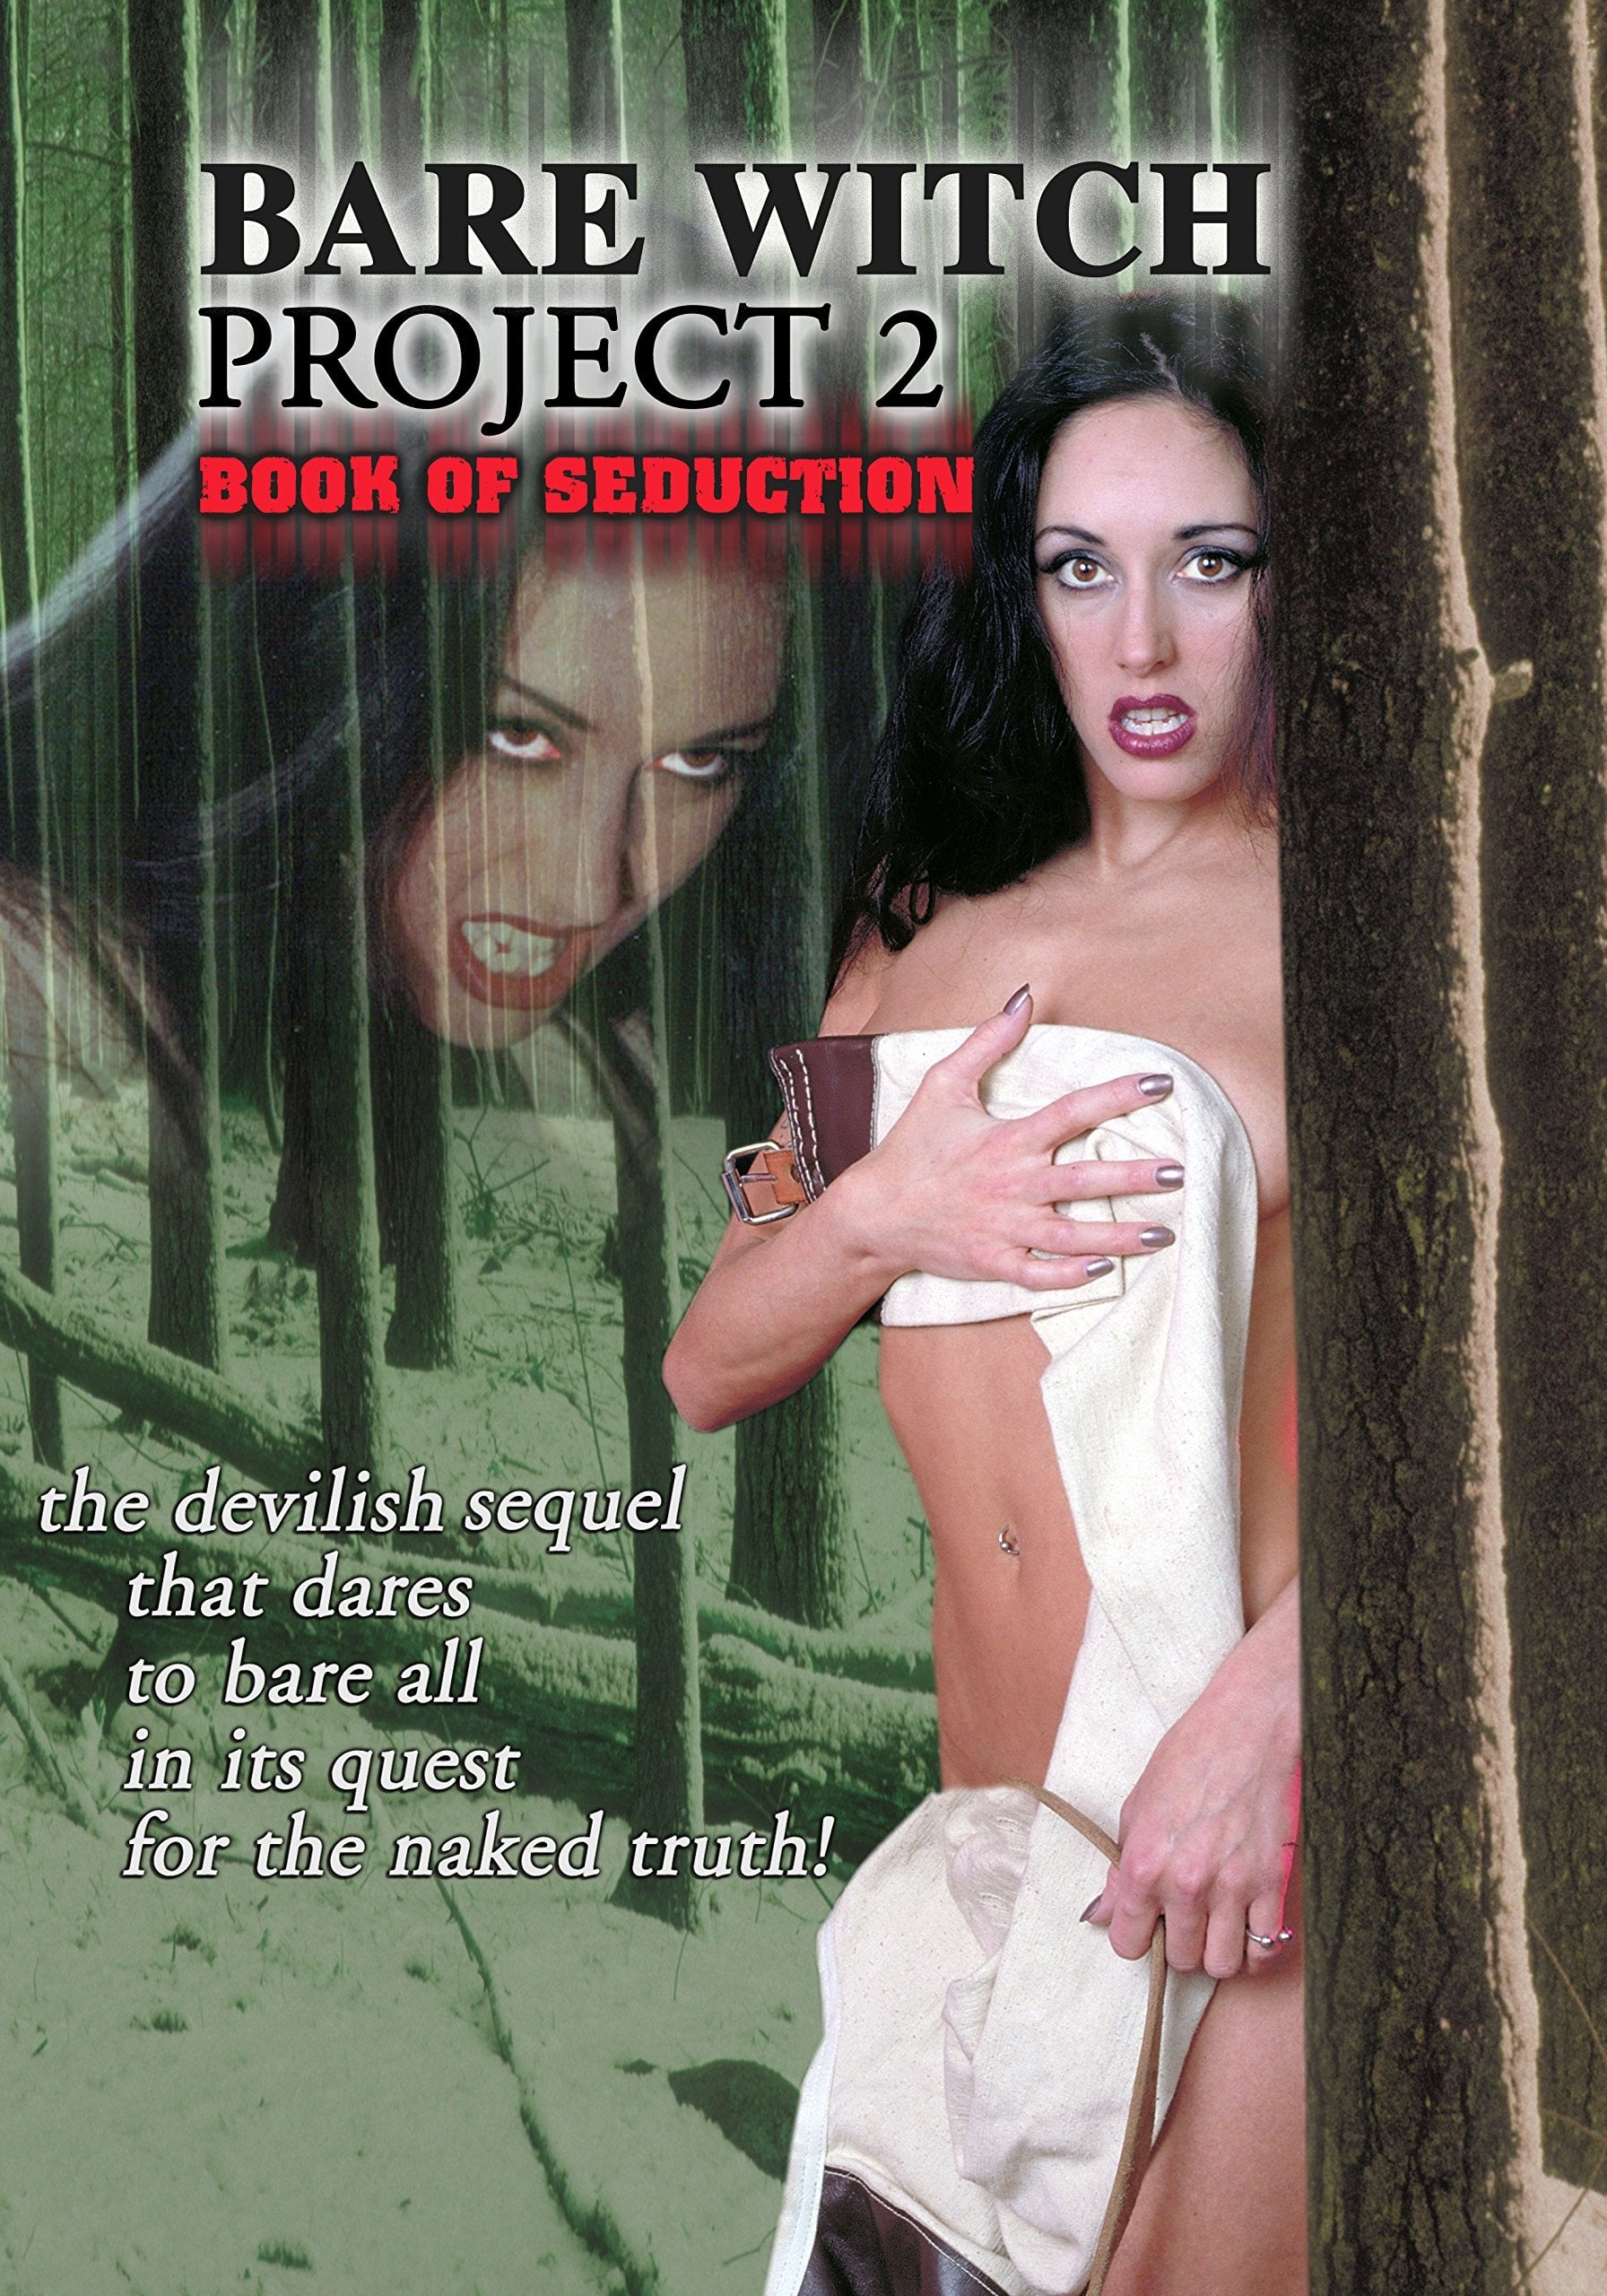 teen-sex-erotic-witch-project-movie-naked-free-college